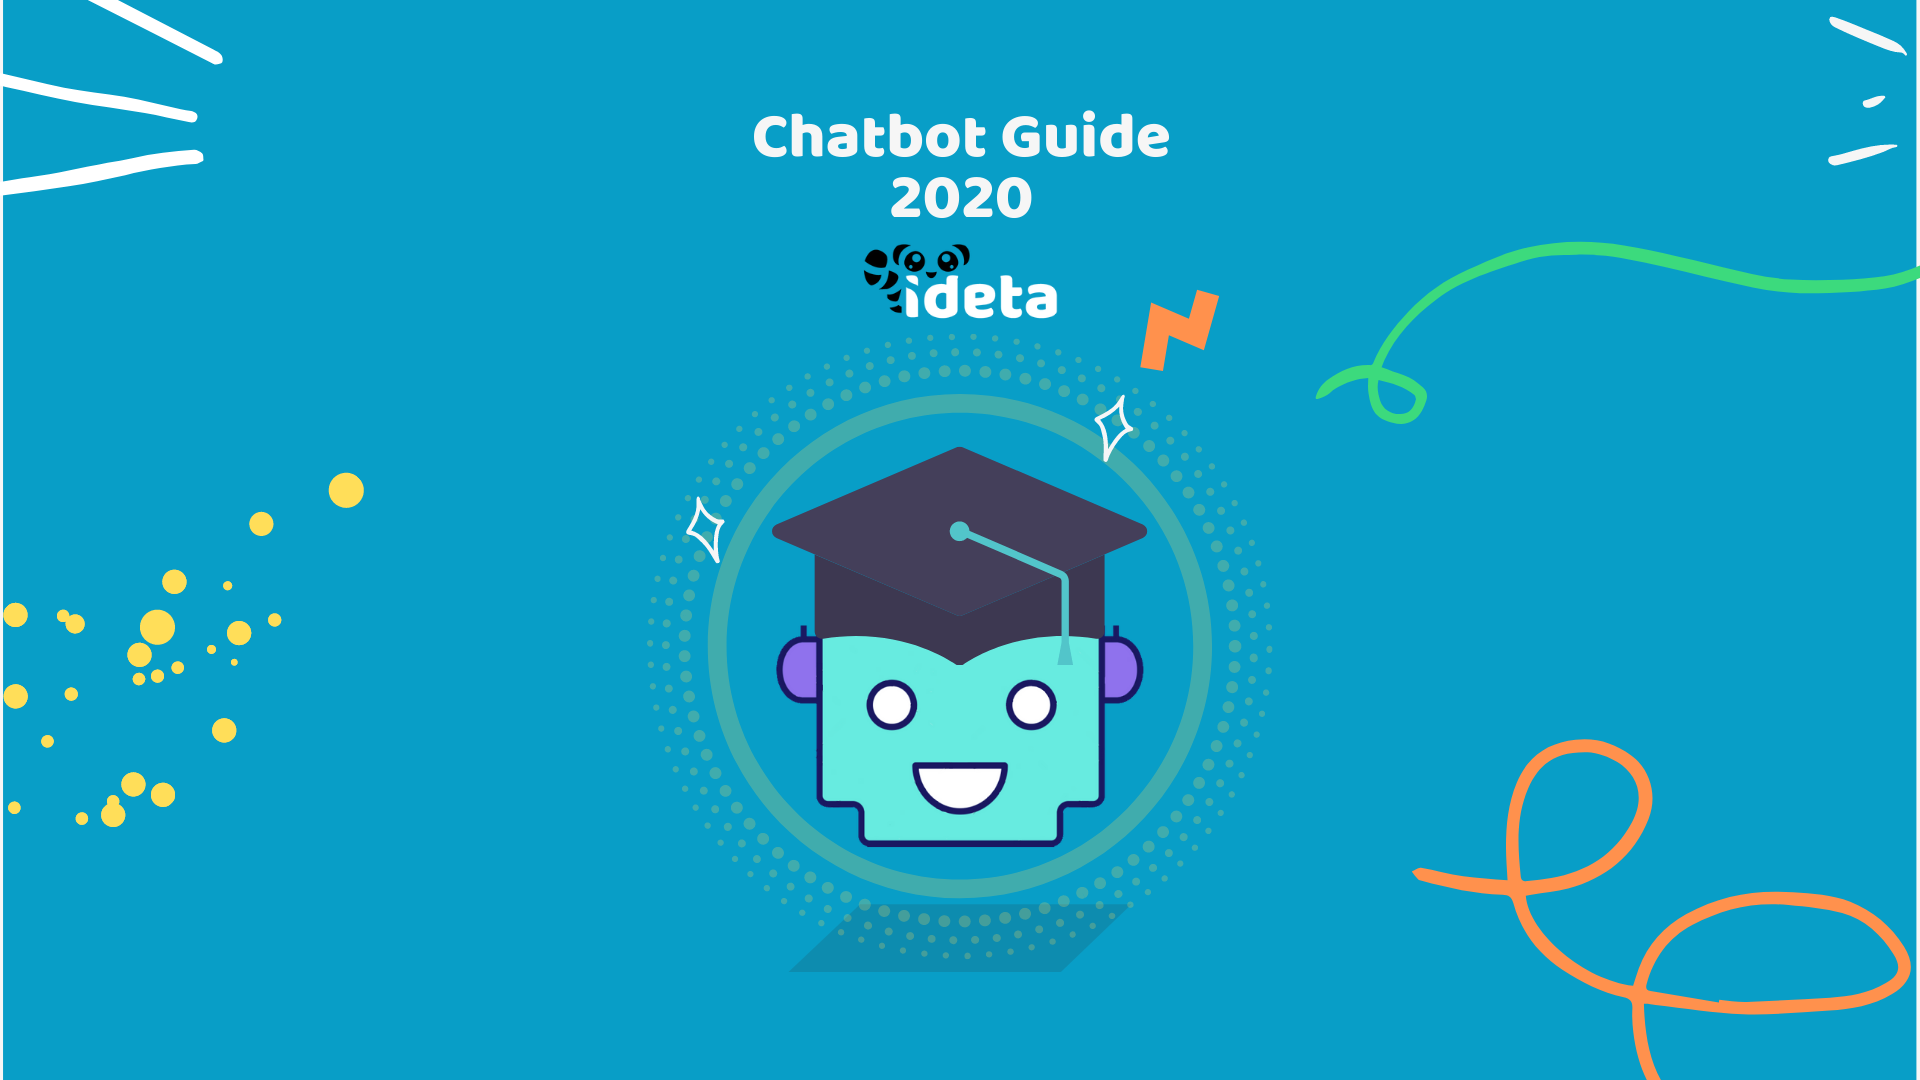 10 Chatbot Best Practices in 2020